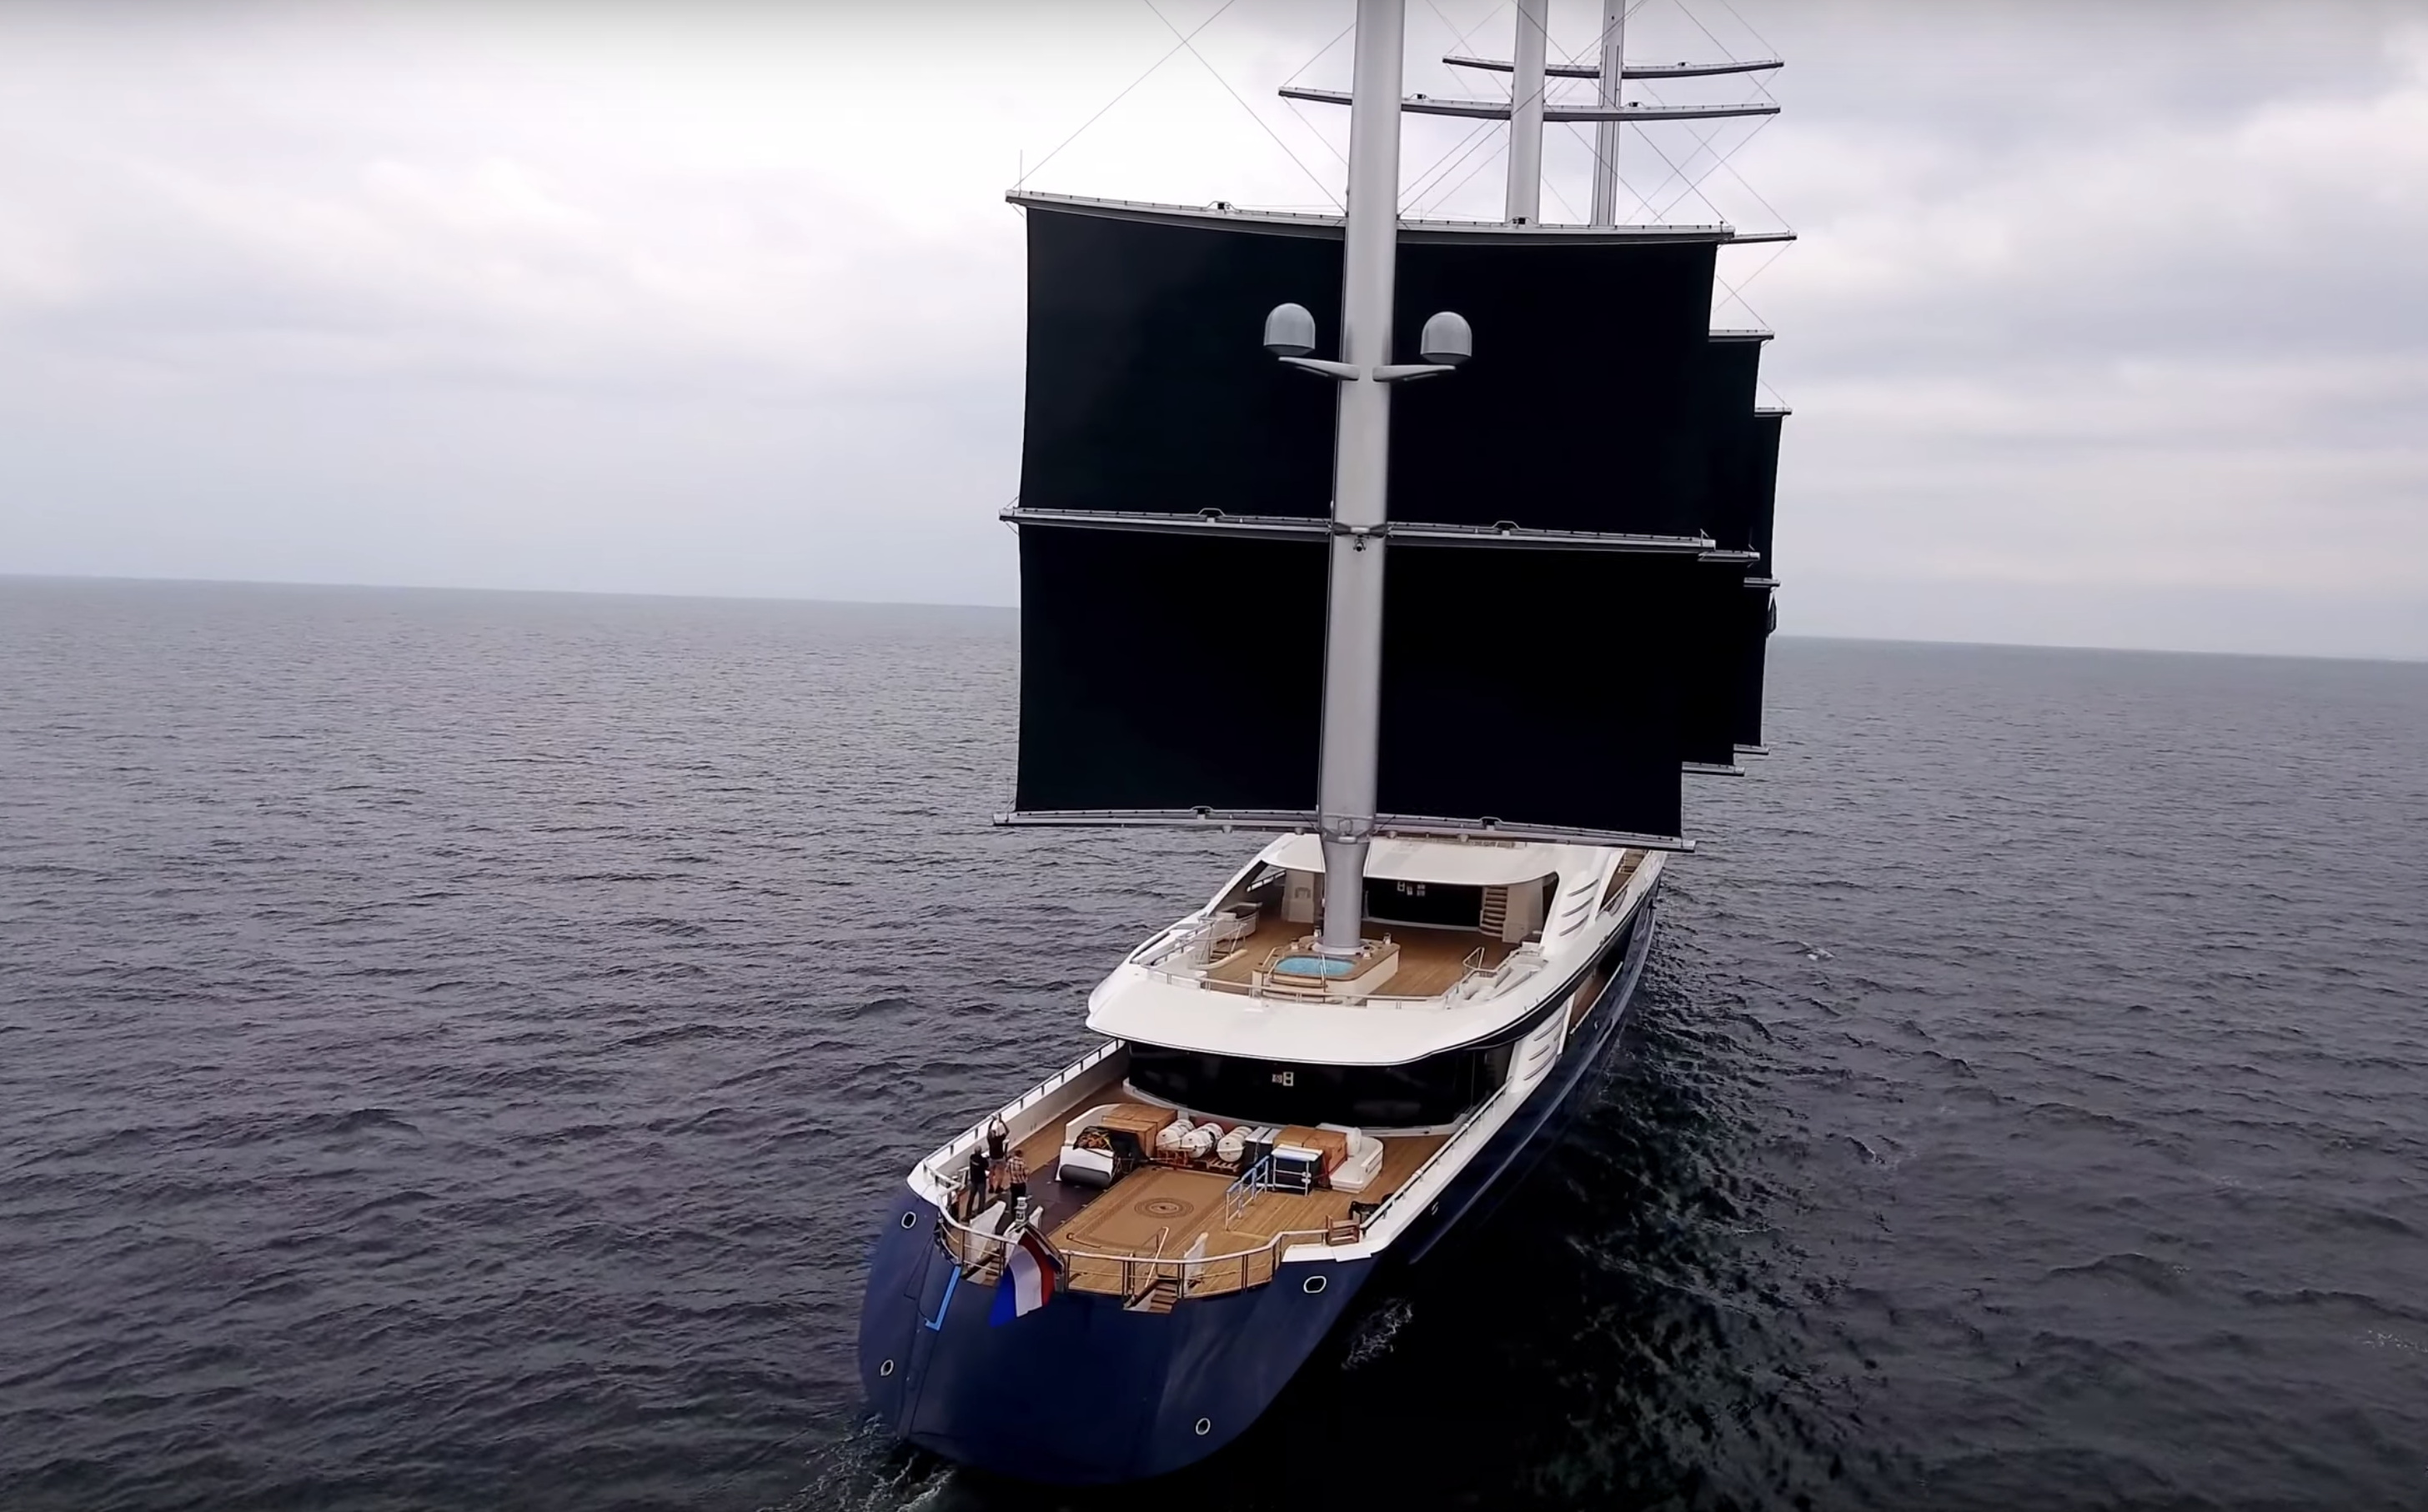 The full story behind the world's largest sailing yacht